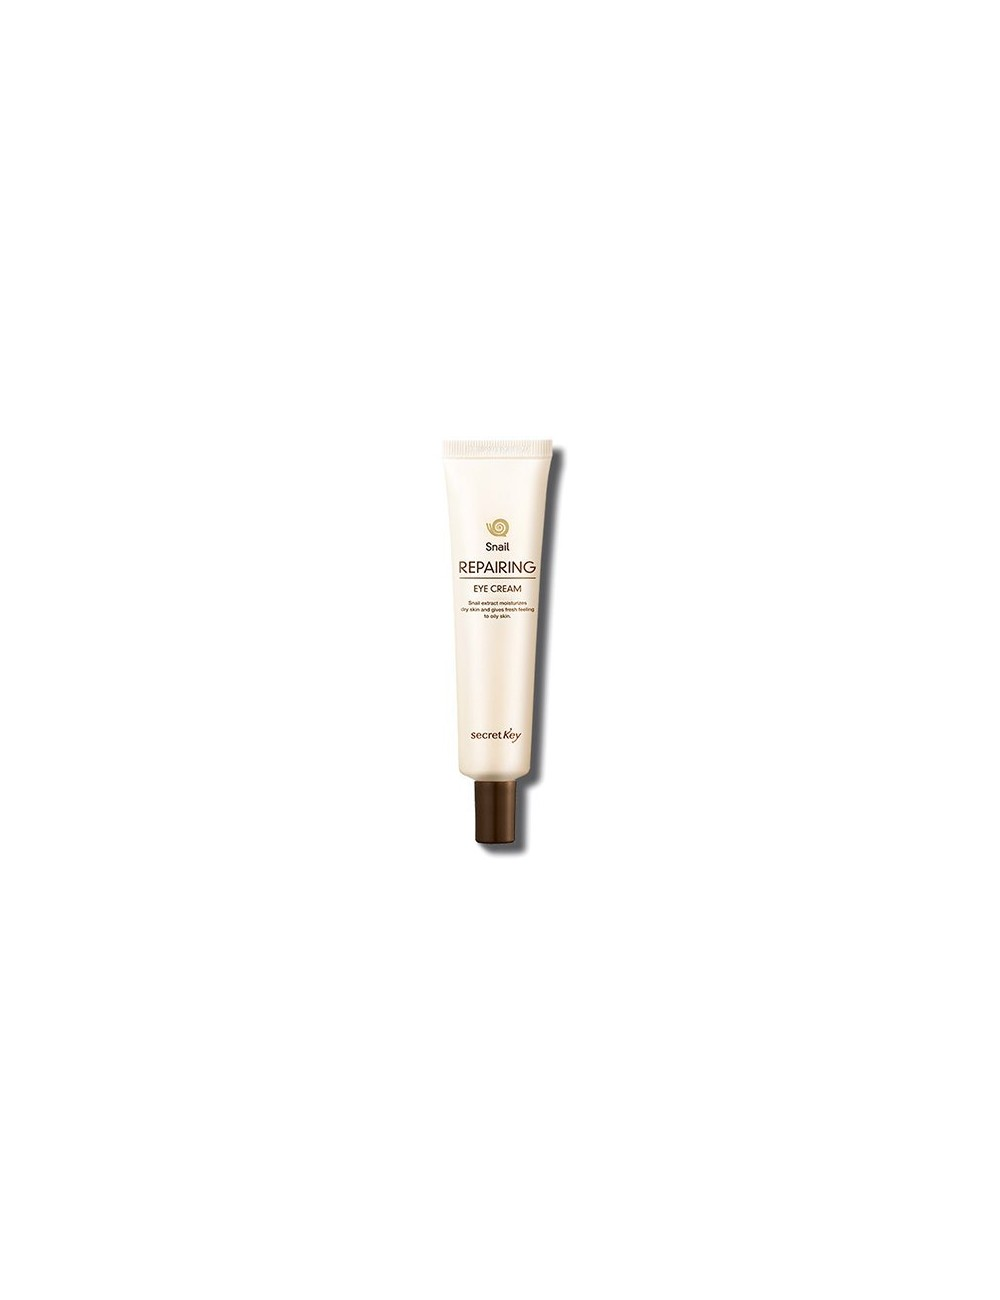 Contorno de Ojos Antiojeras y Antiarrugas Secret Key Snail Reparing Eye Cream